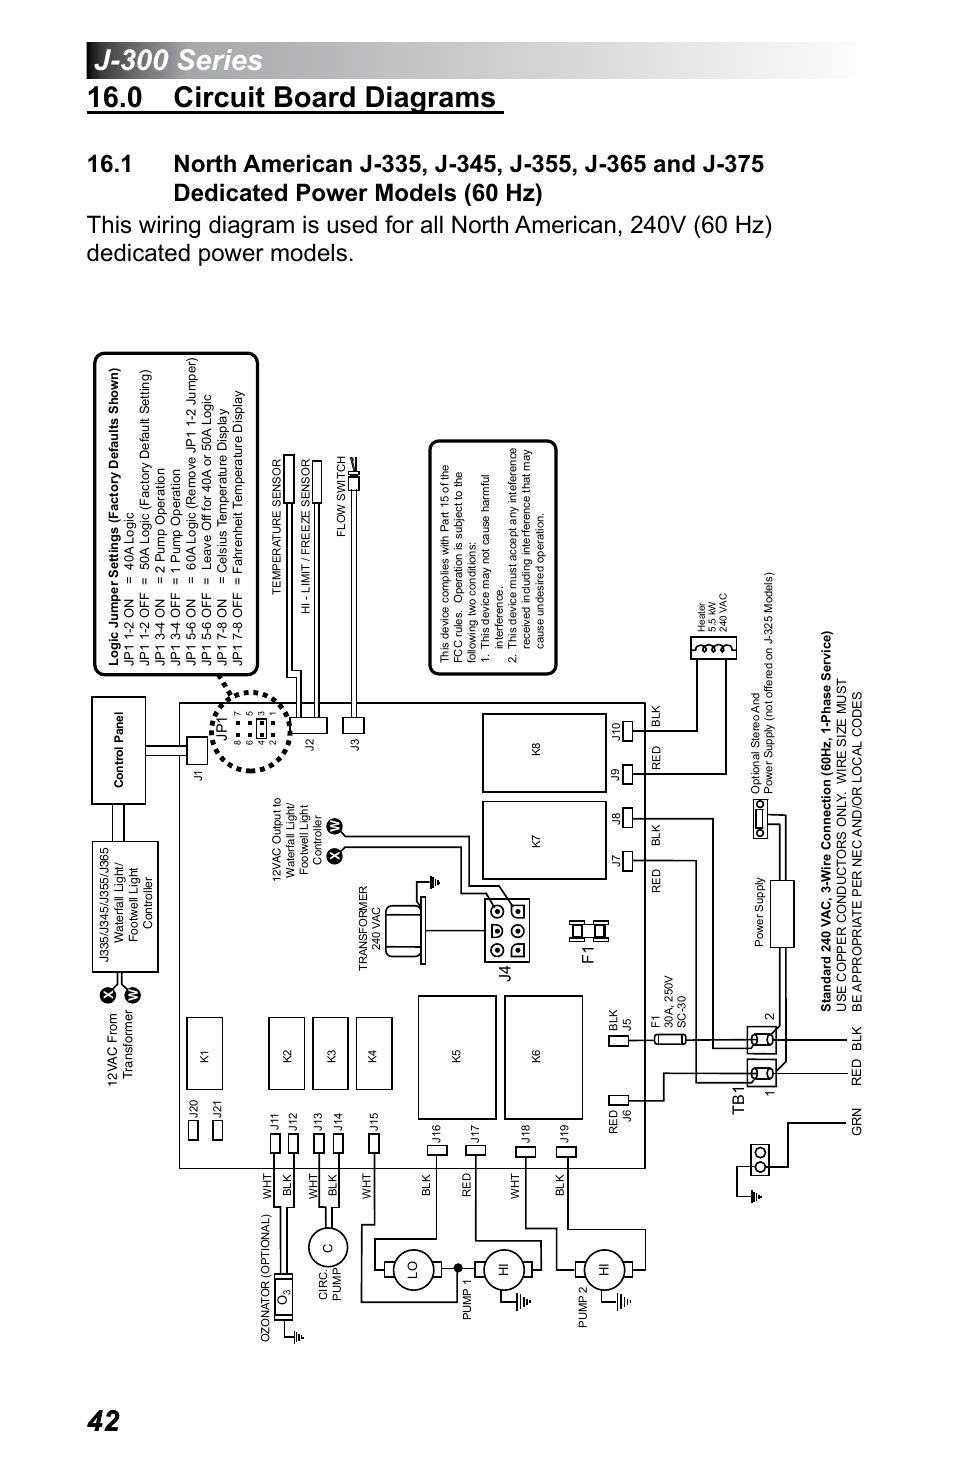 Jacuzzi Wiring Diagram - Wiring Diagrams 24 on